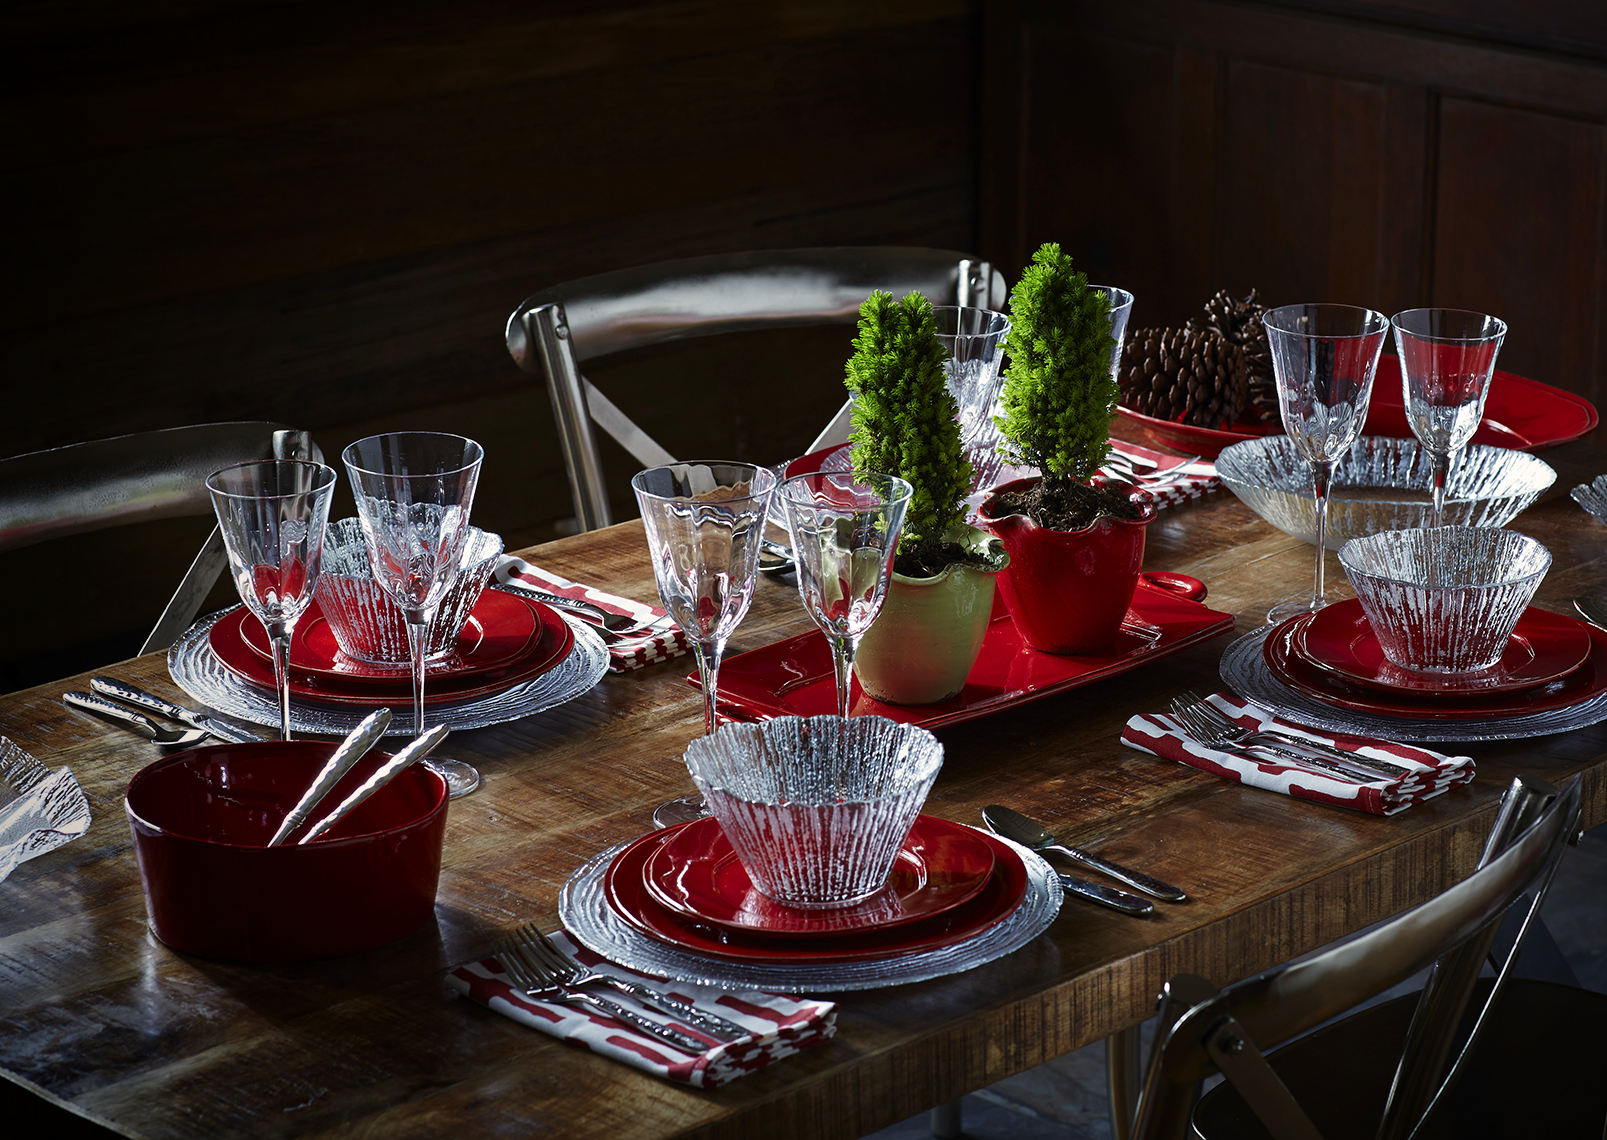 Catalog photography featuring a dark colorful table and artisan ceramics